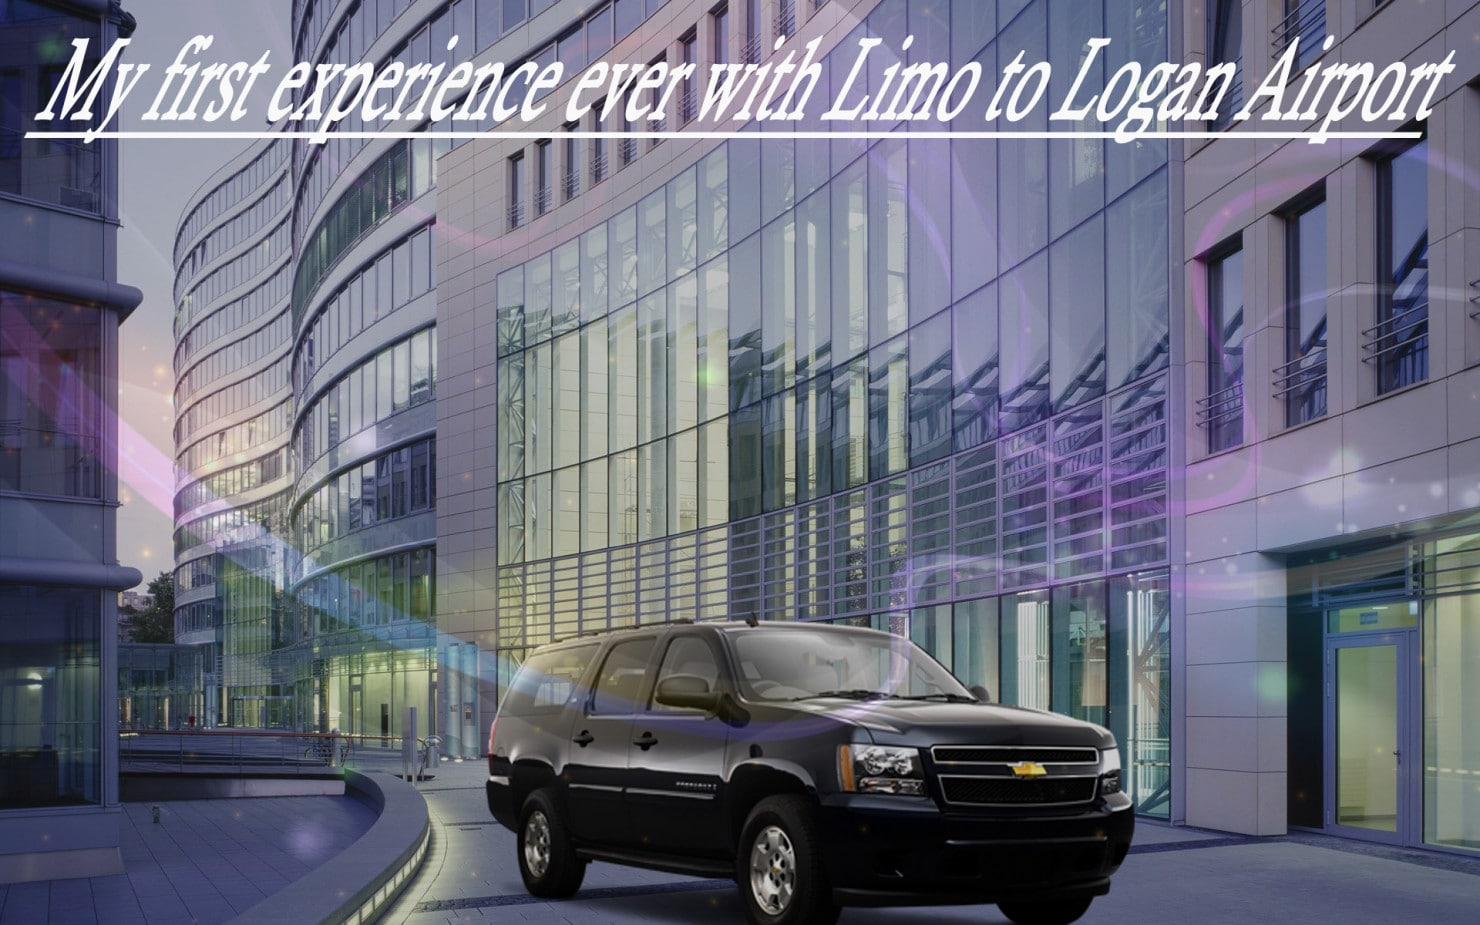 Limo to Logan Airport